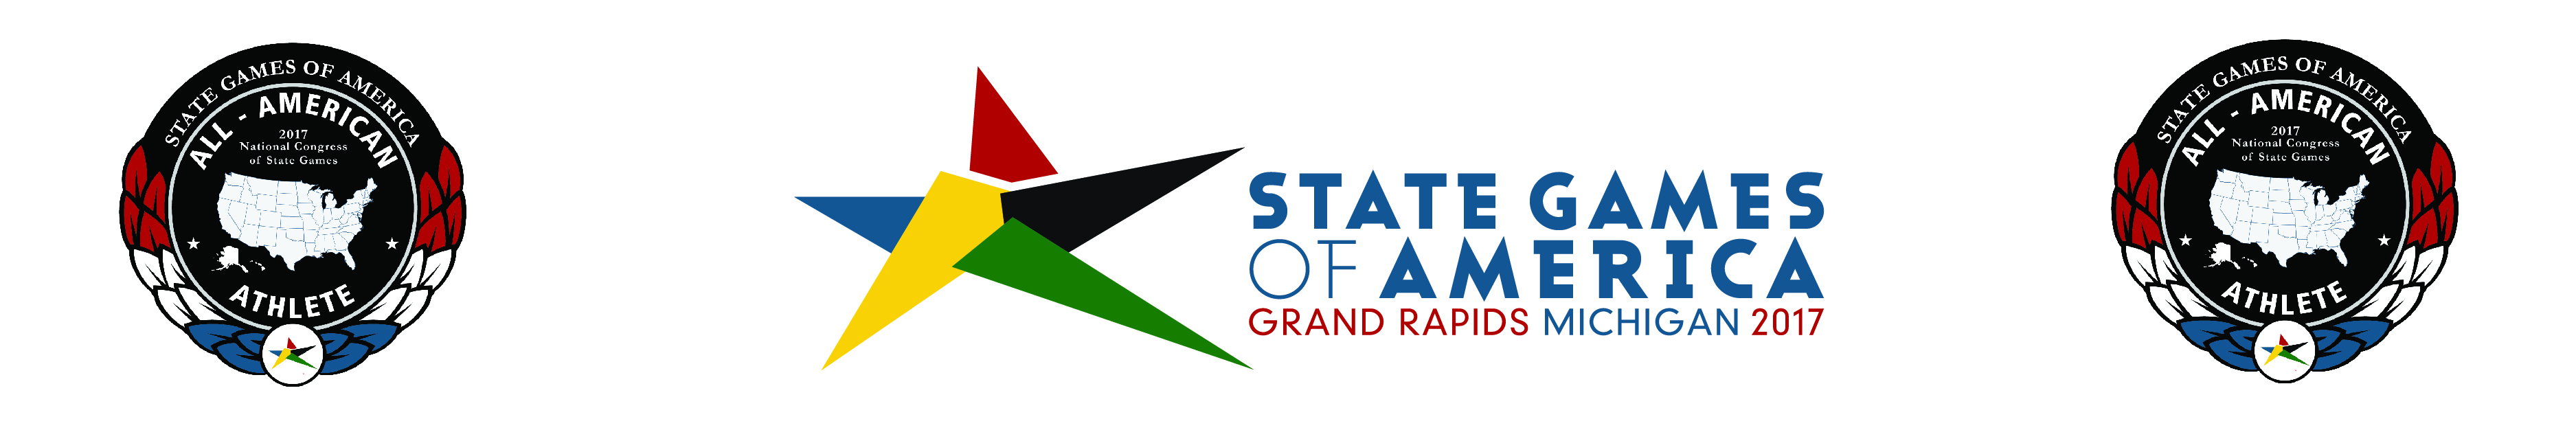 State Games of America - All American